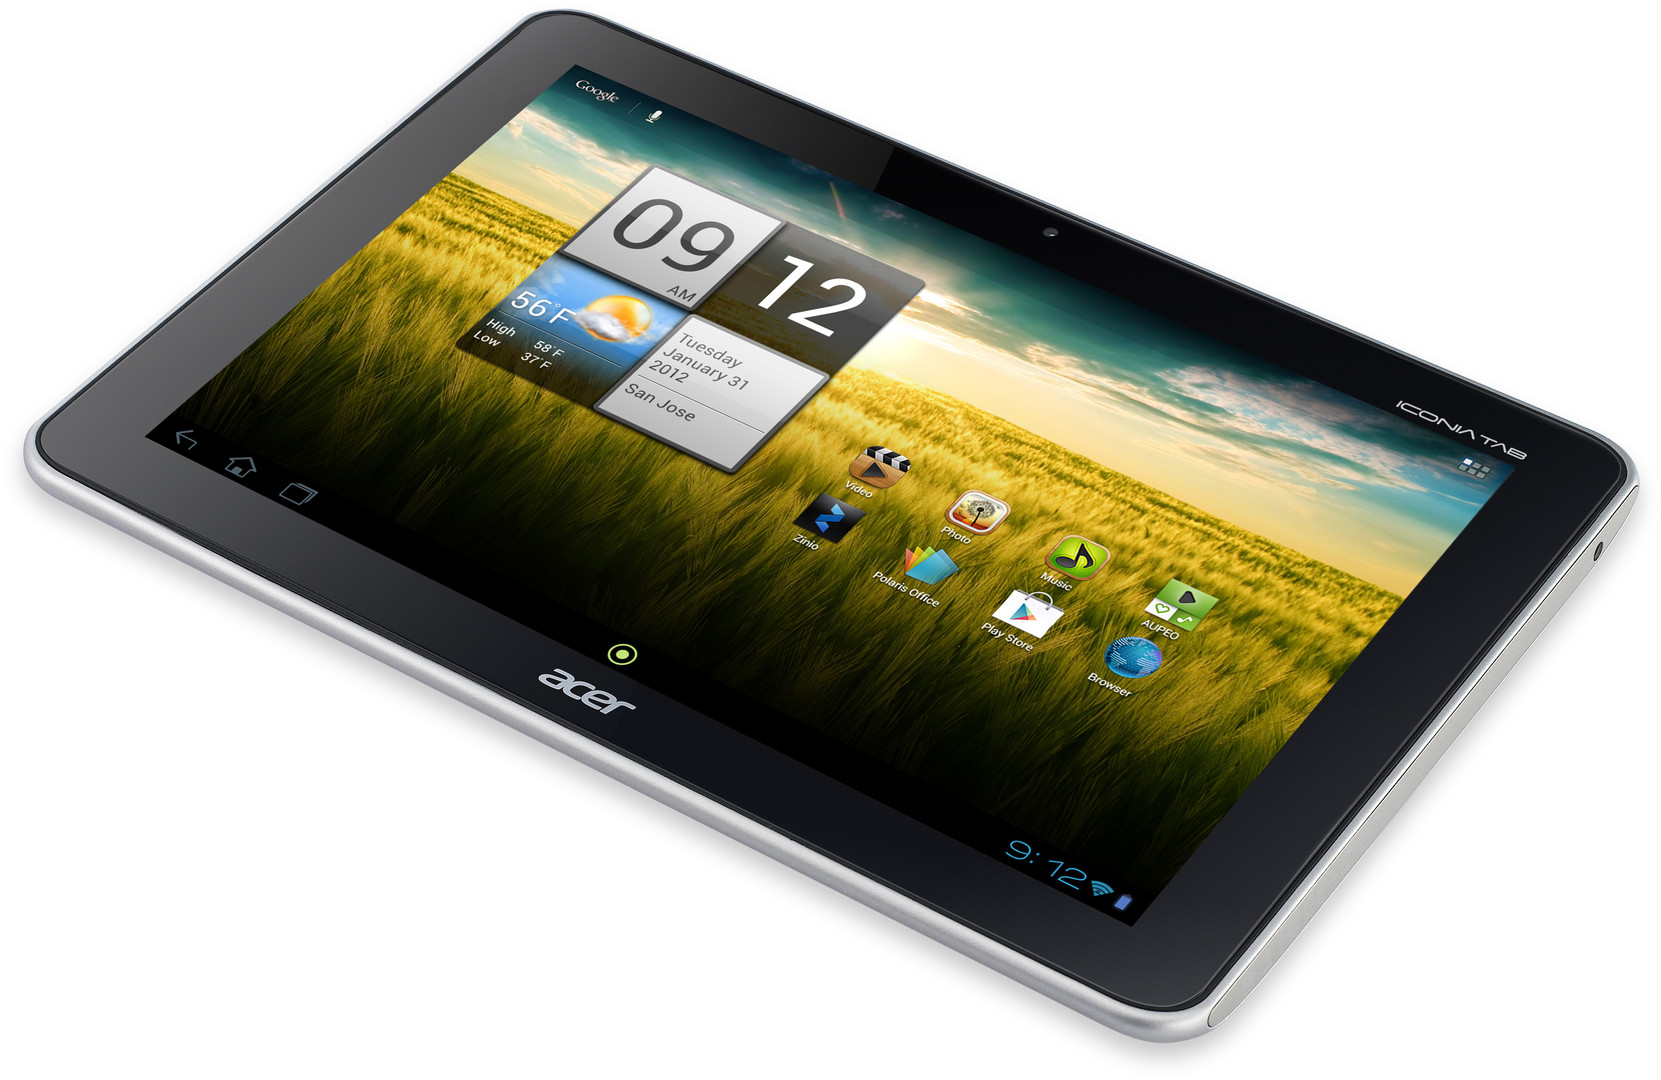 Acer Iconia Tab A210: Product Review - Image 1